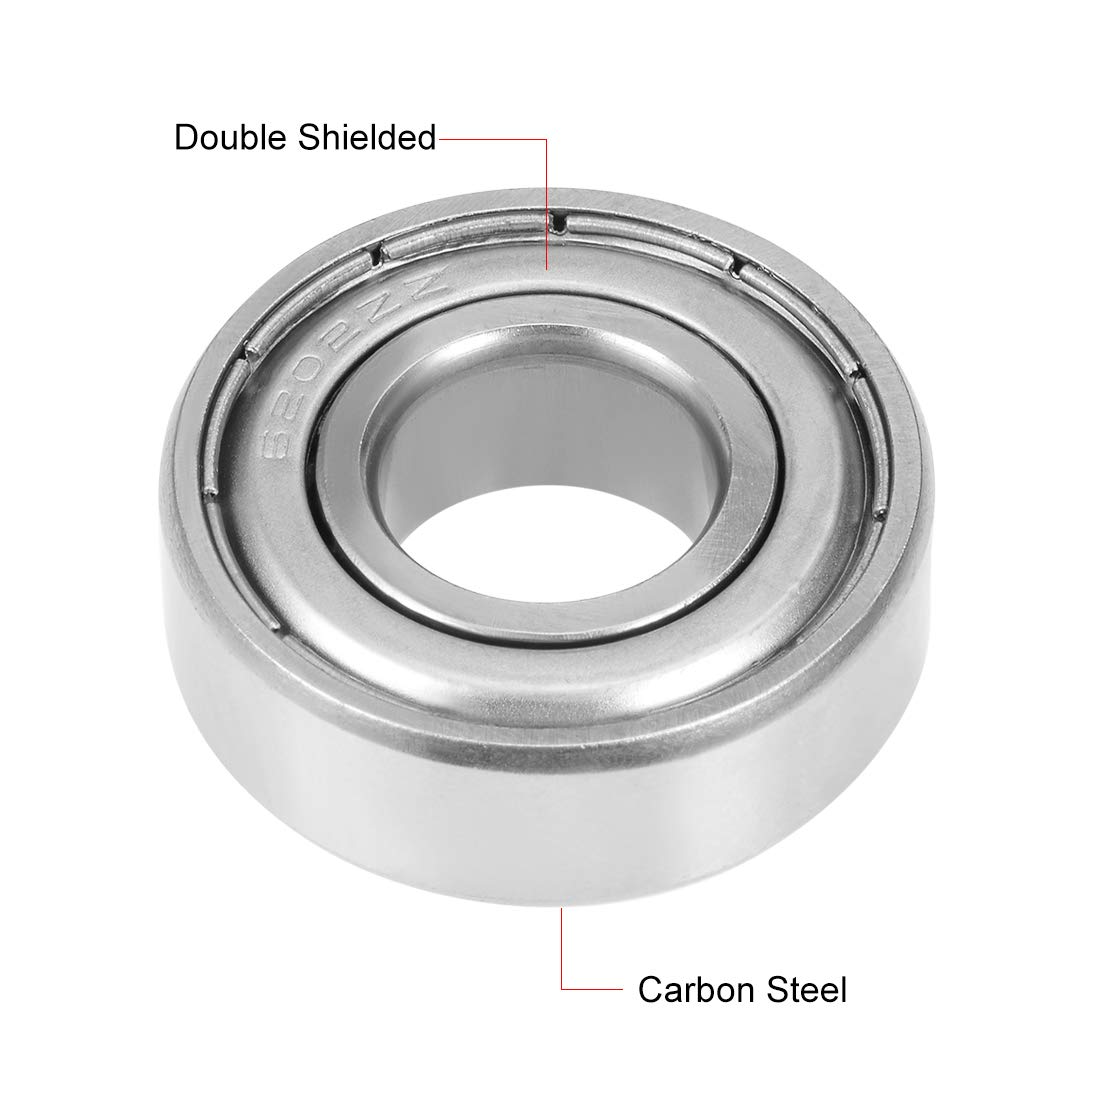 Pack of 10 Carbon Steel sourcing map 6200-2RS Ball Bearing 10mm x 30mm x 9mm Double Sealed 180200 Deep Groove Bearings